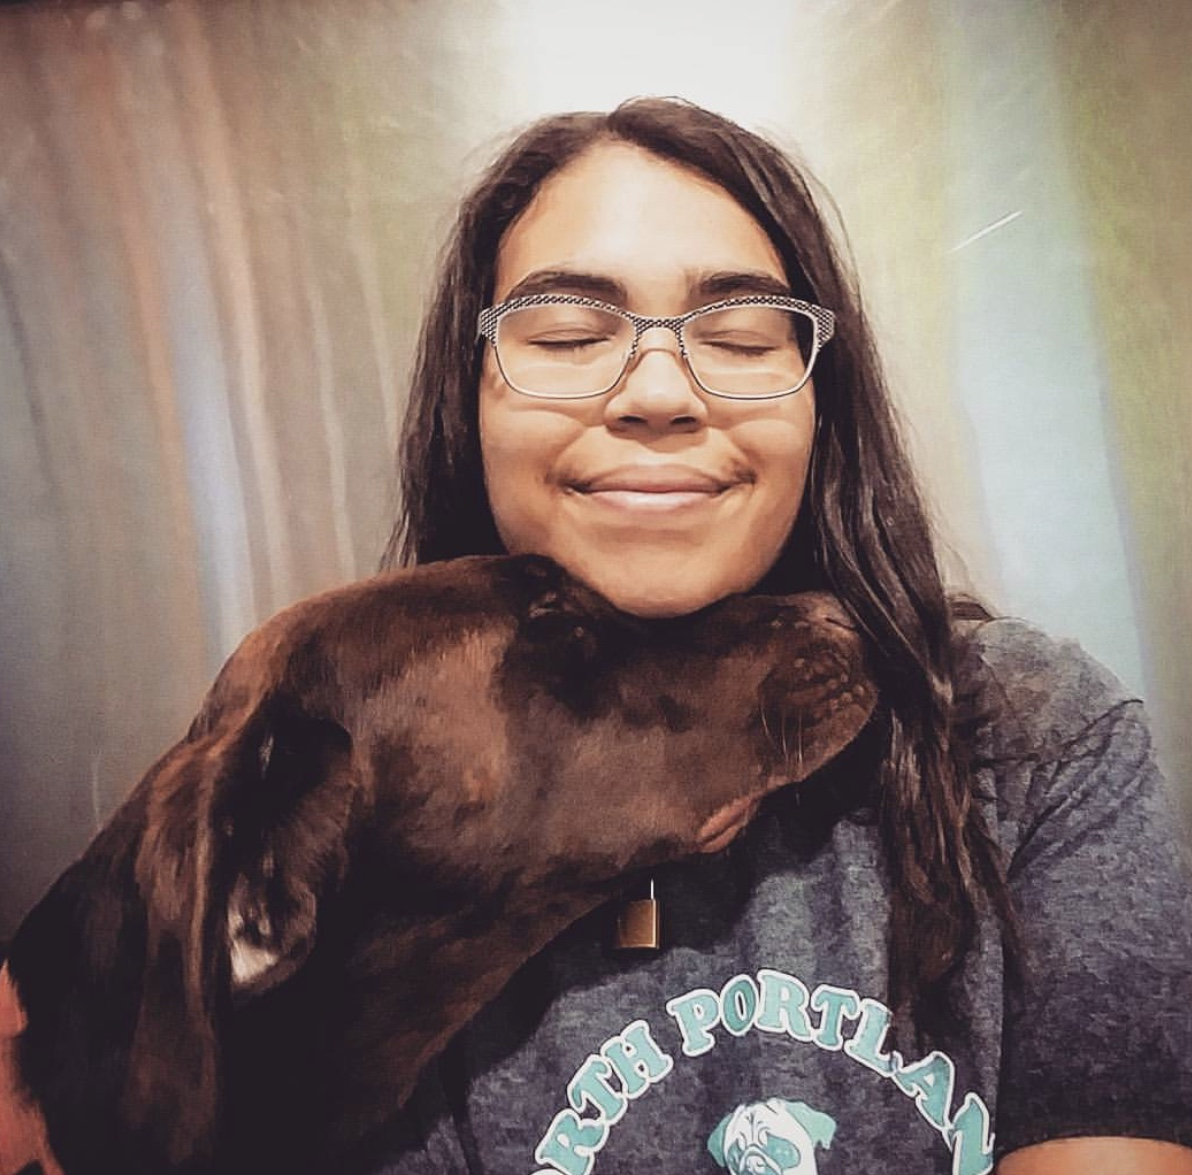 iesha -Employee since October 2016 -Daycare team member, Pet first aid certified -Favorite DOg Breeds: great danes, akitas, chow chows -Personal pets: rascal, a 15 year old cat